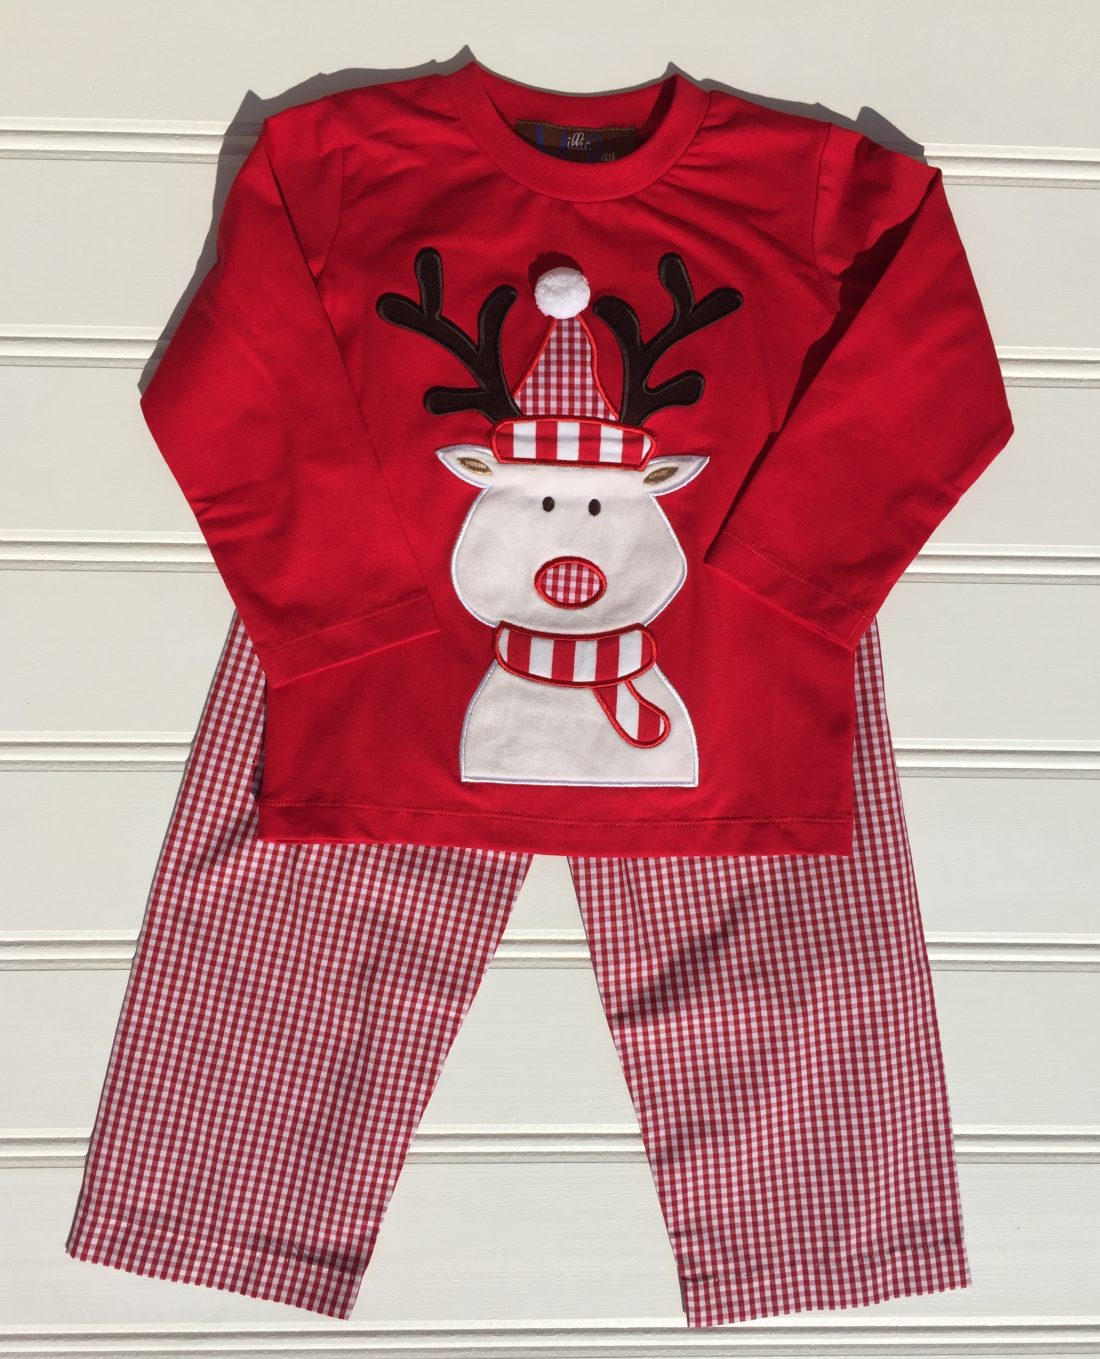 Millie Jay Reindeer Applique Boys Pant Set